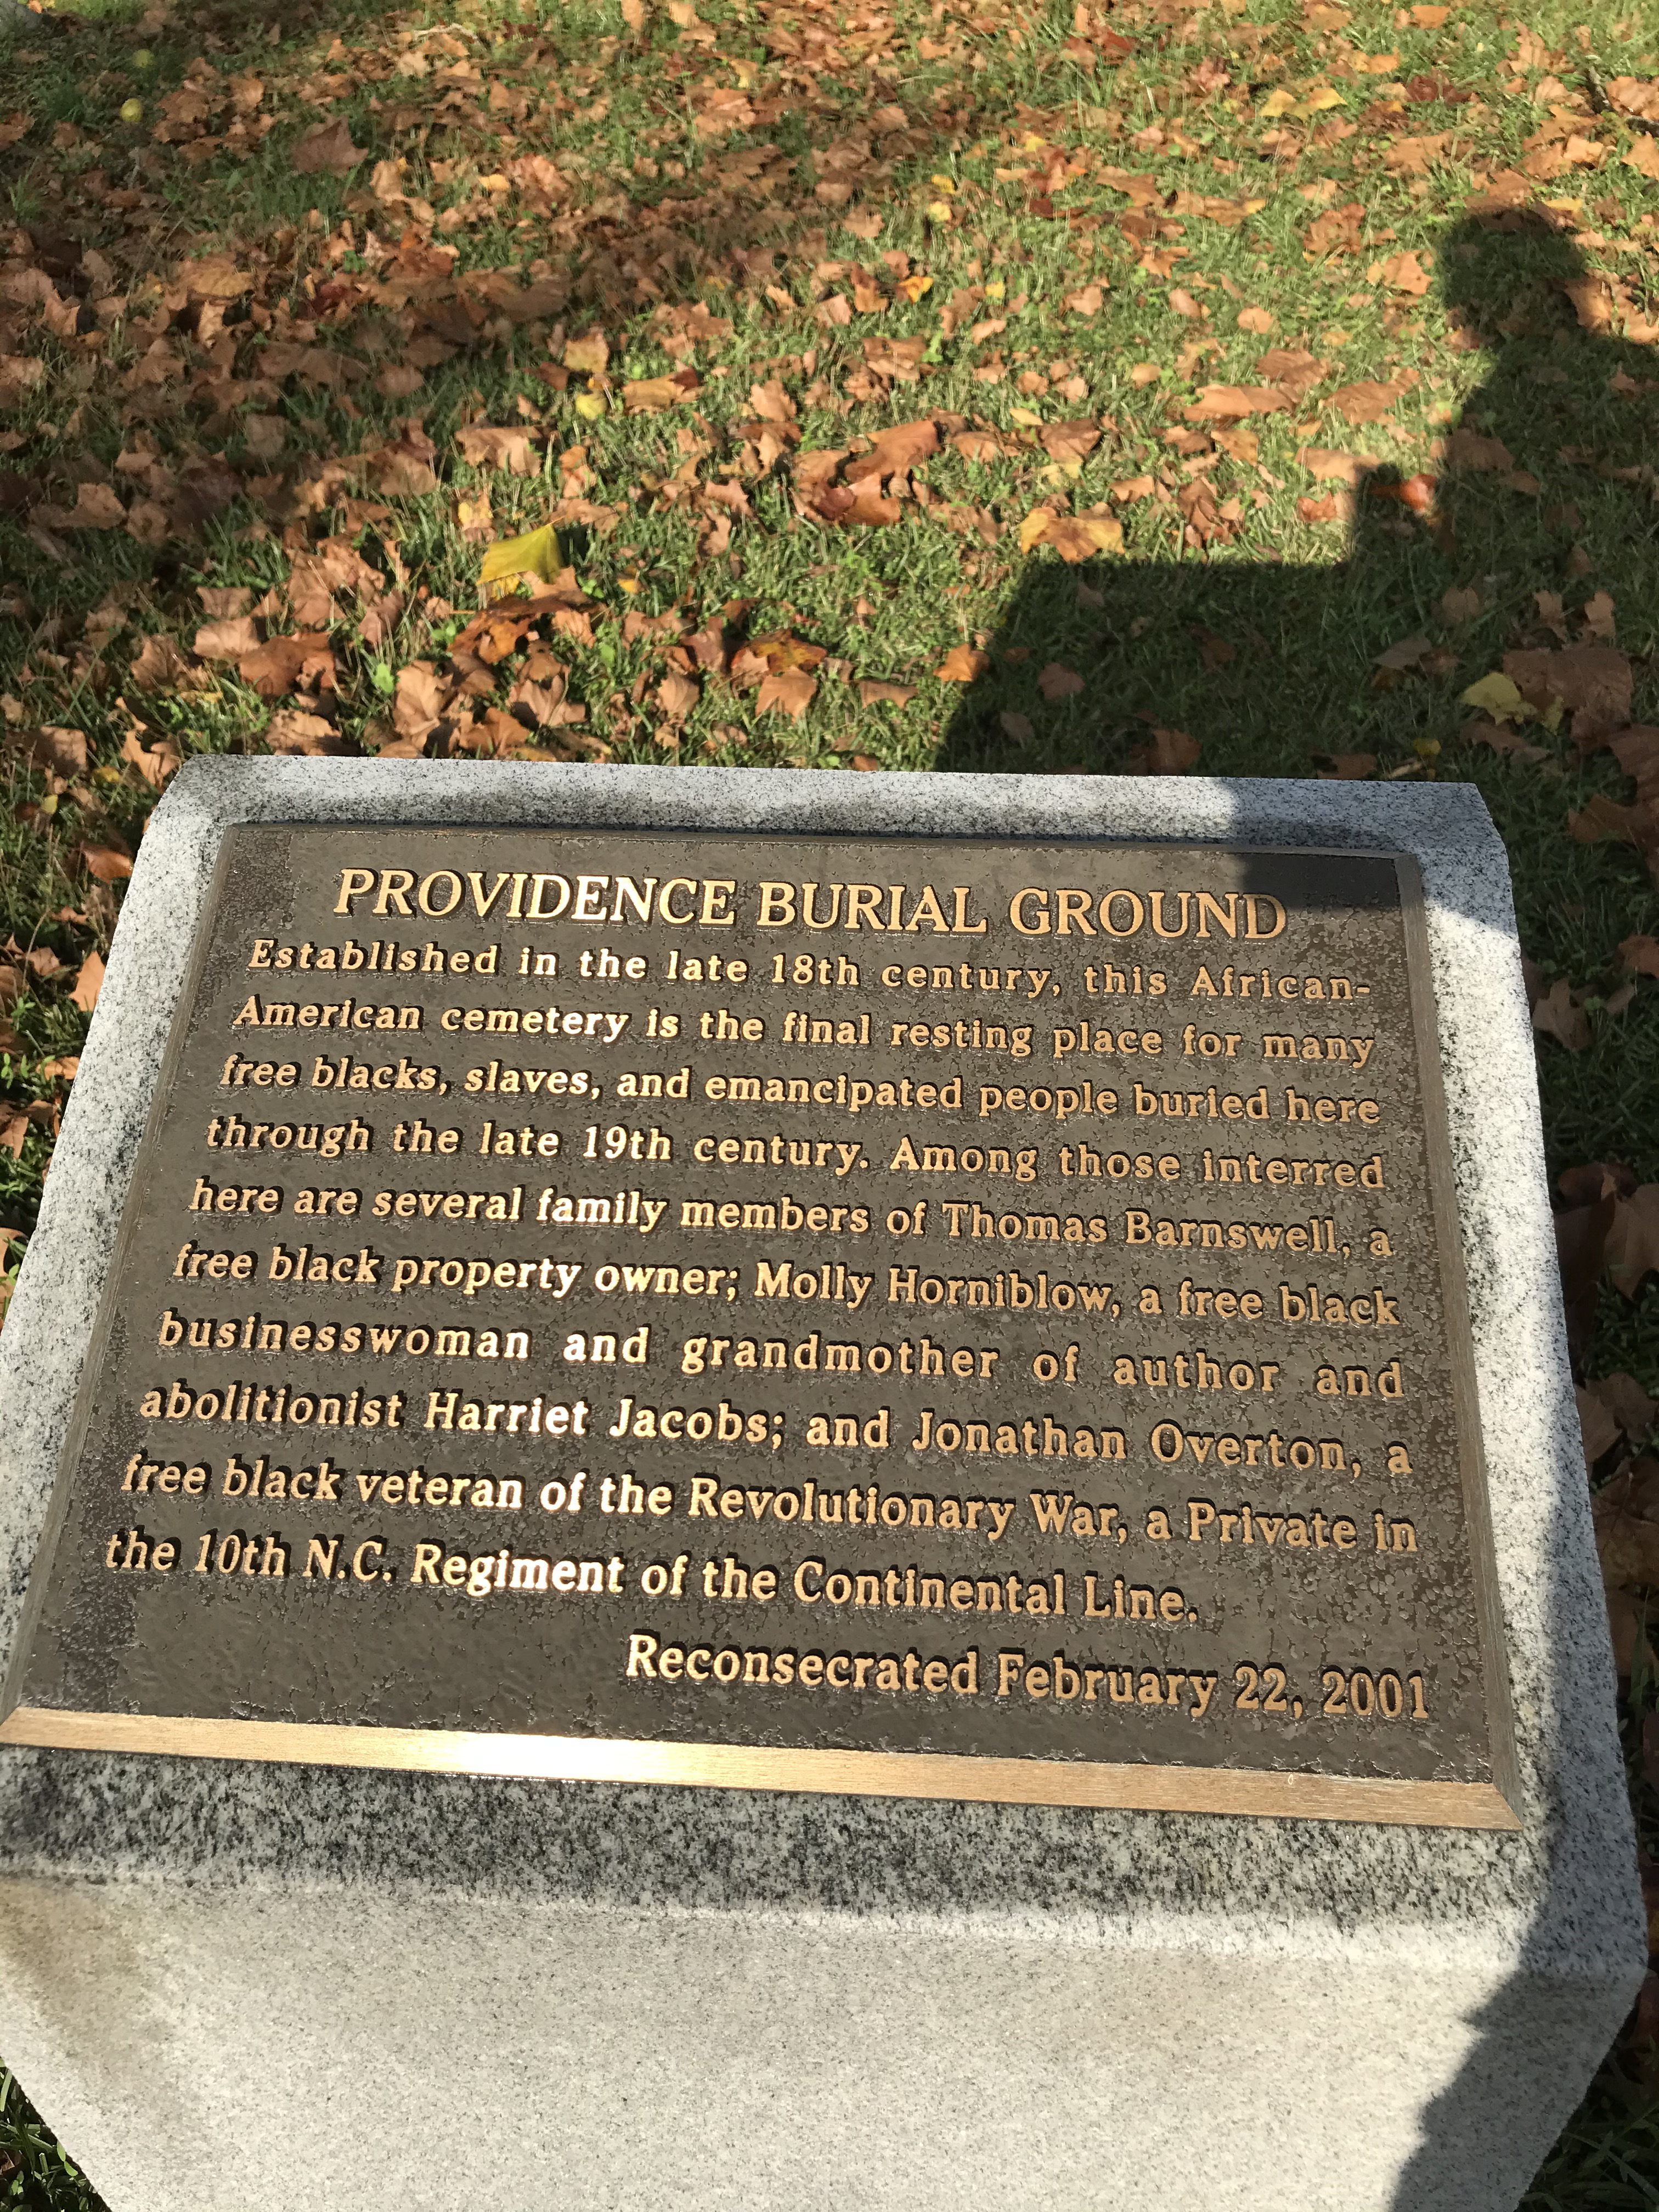 Historic marker placed at grave site in February 2002 for commemoration ceremony